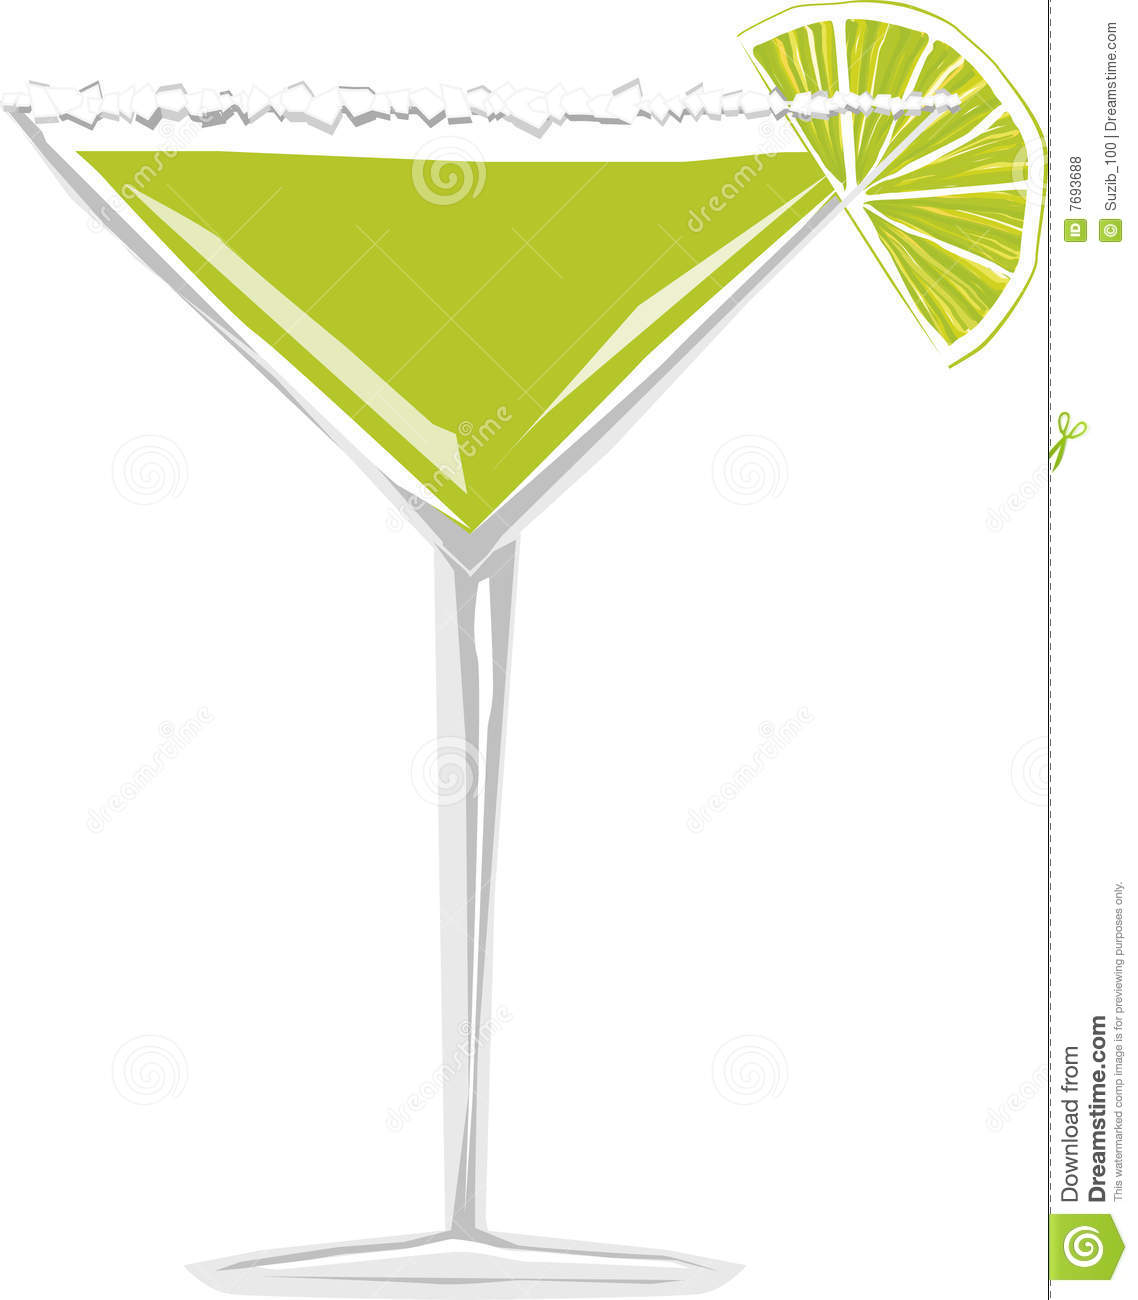 Margarita Mexico Mexican Cuisine Tequila Taco - Mexico Illustration Png  Clipart (#3808007) - PinClipart